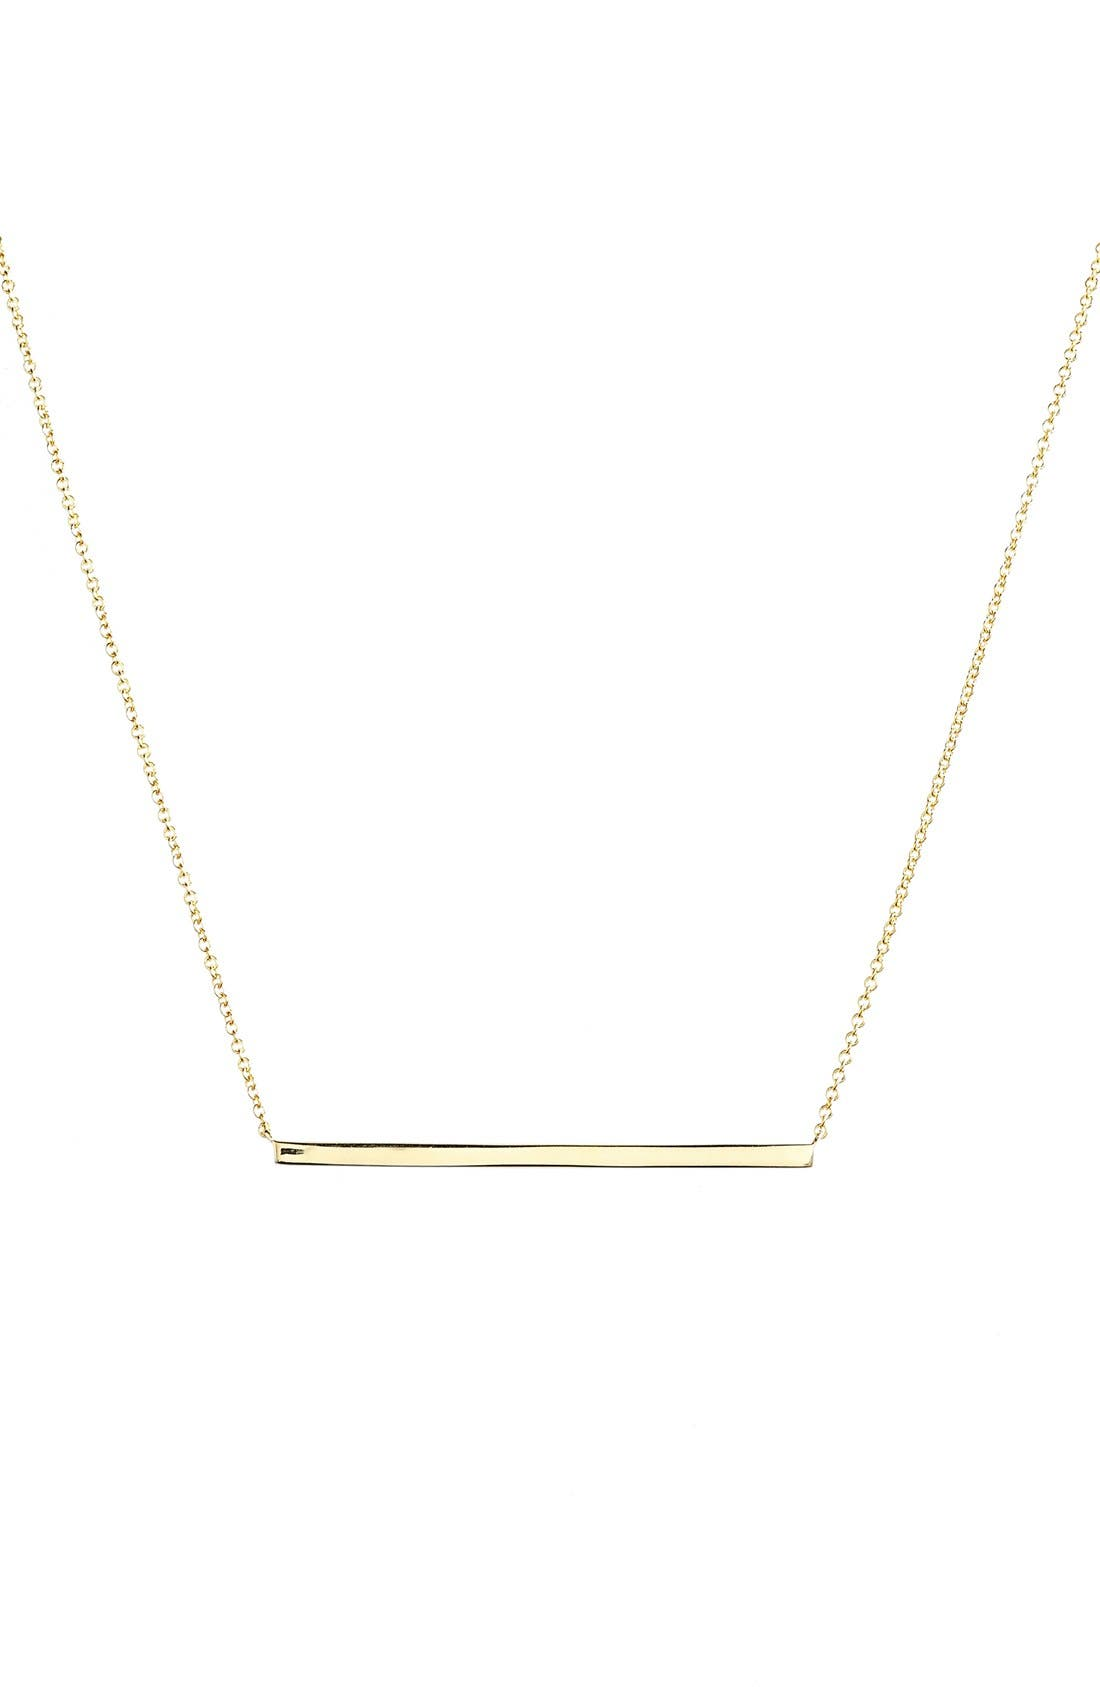 14k Gold Bar Pendant Necklace,                             Main thumbnail 1, color,                             Yellow Gold